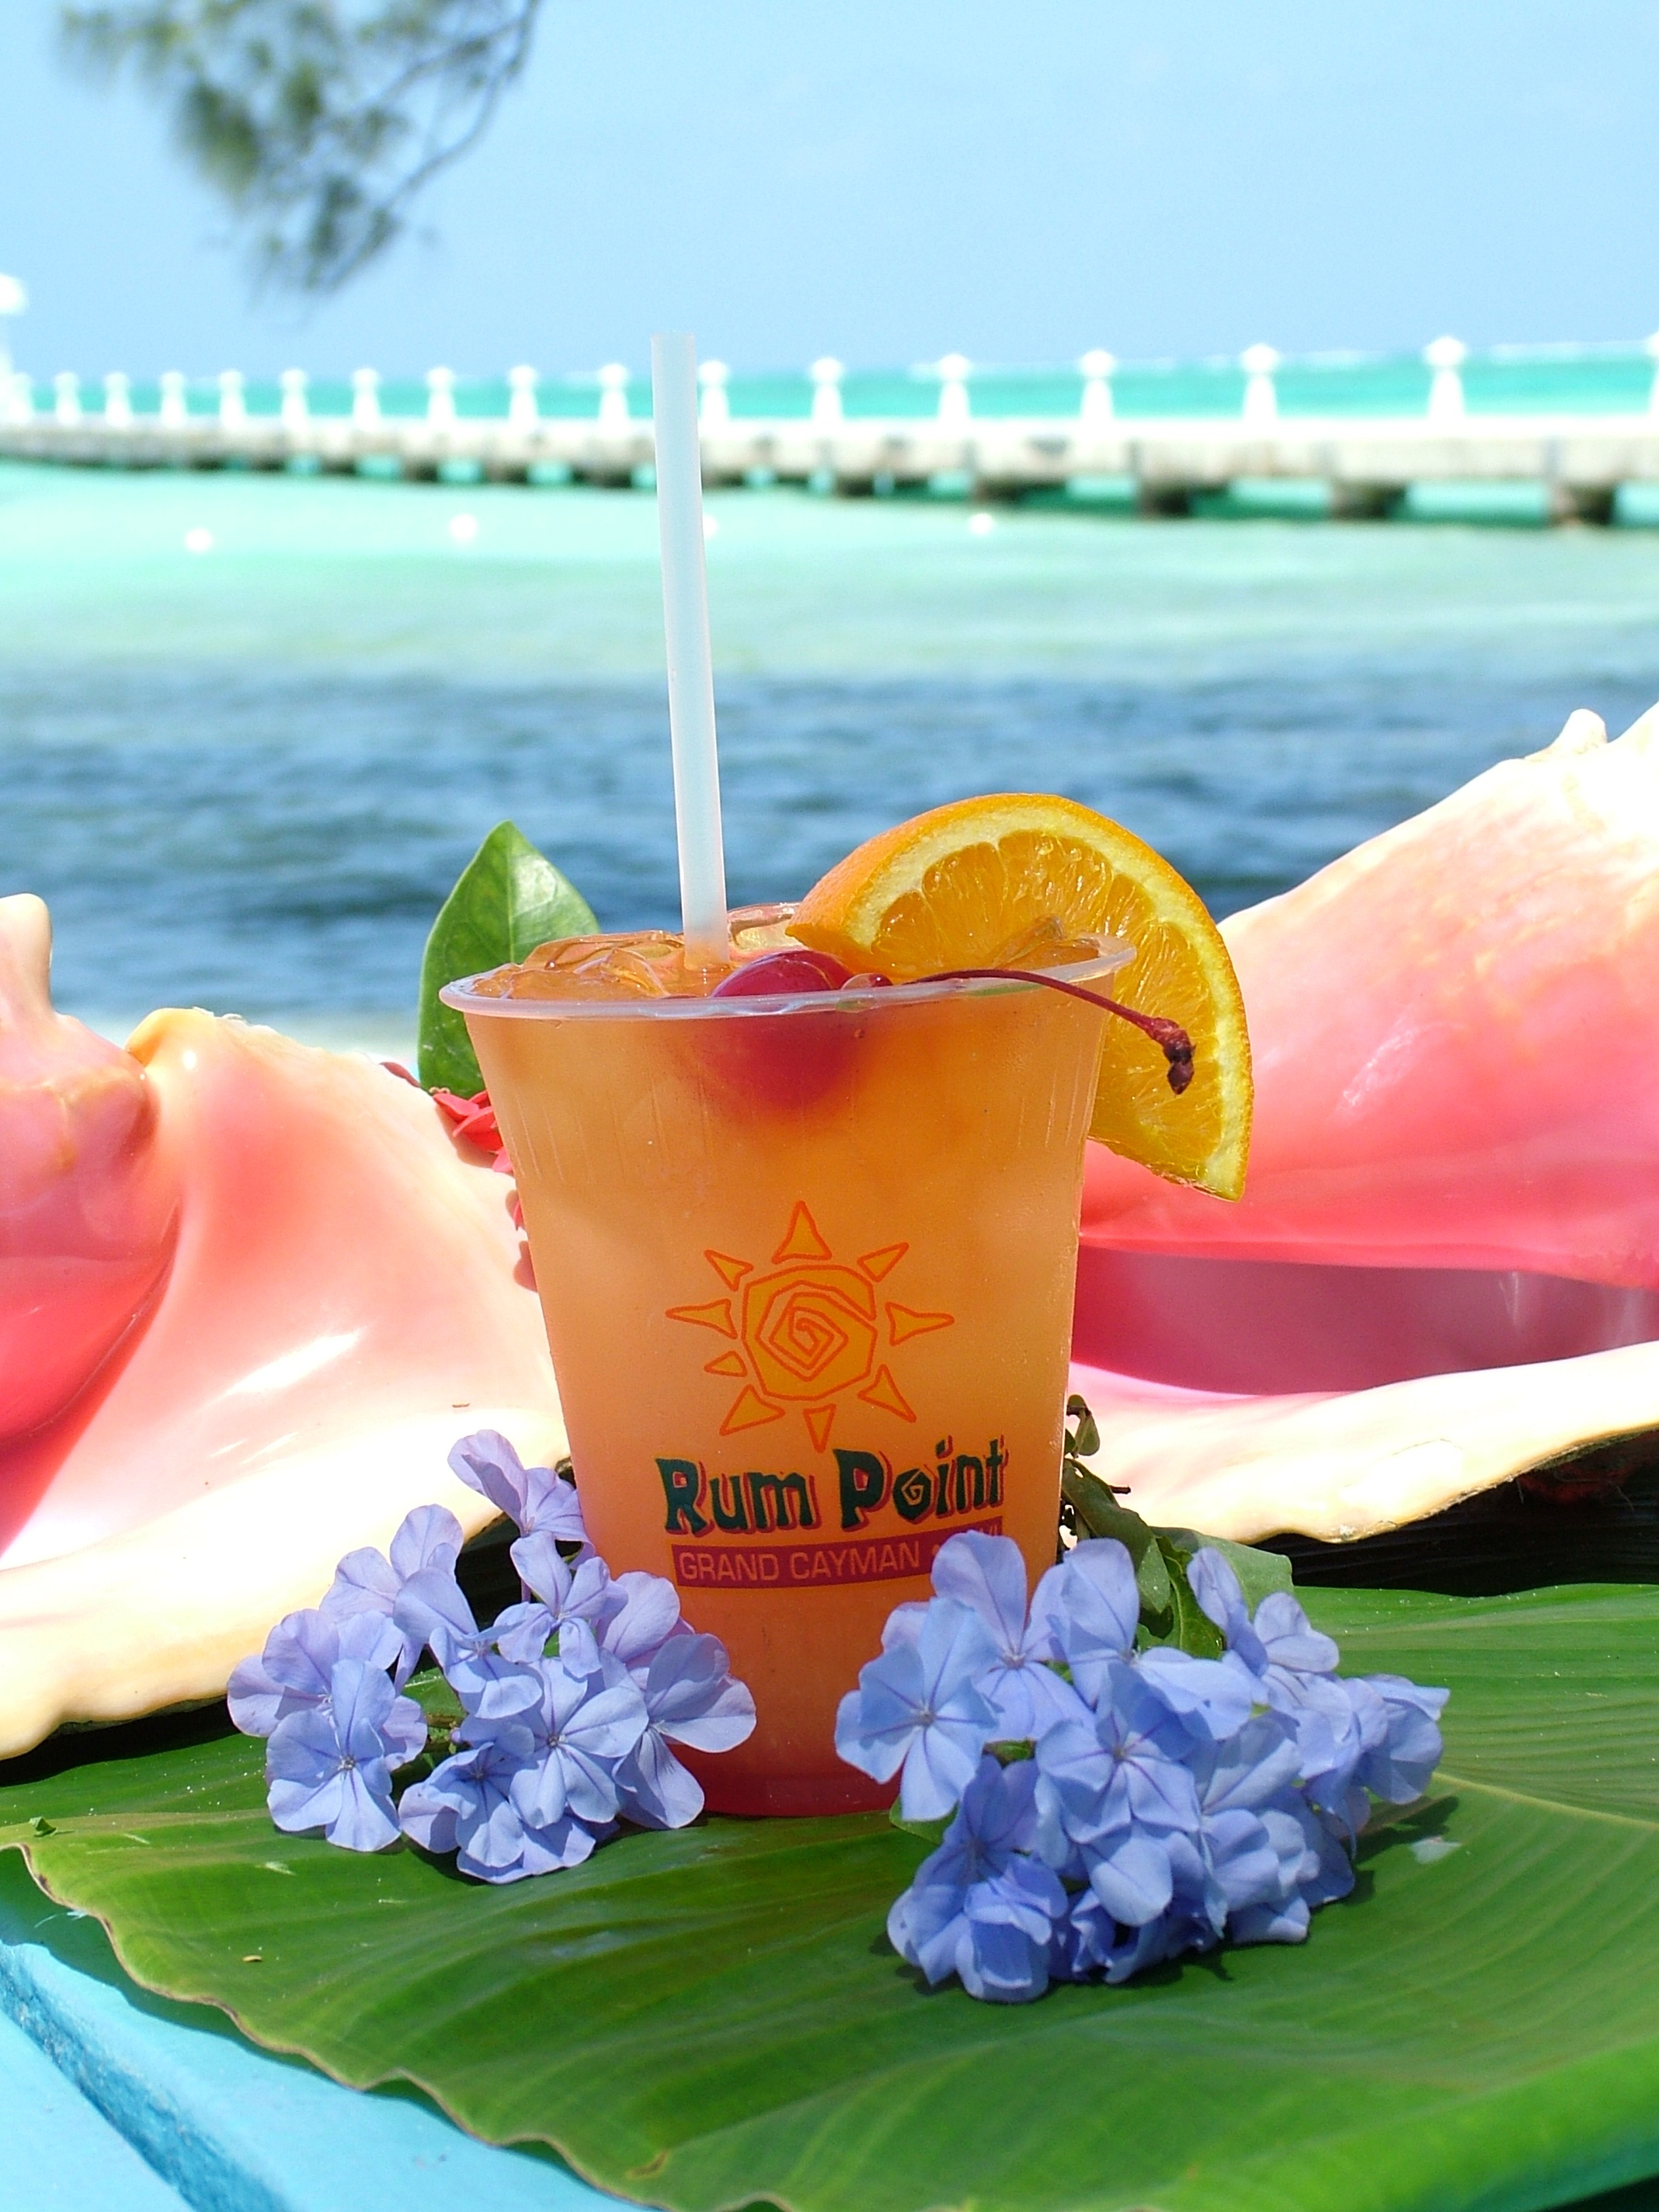 Rum Point Cayman drink with conch shells and flowers